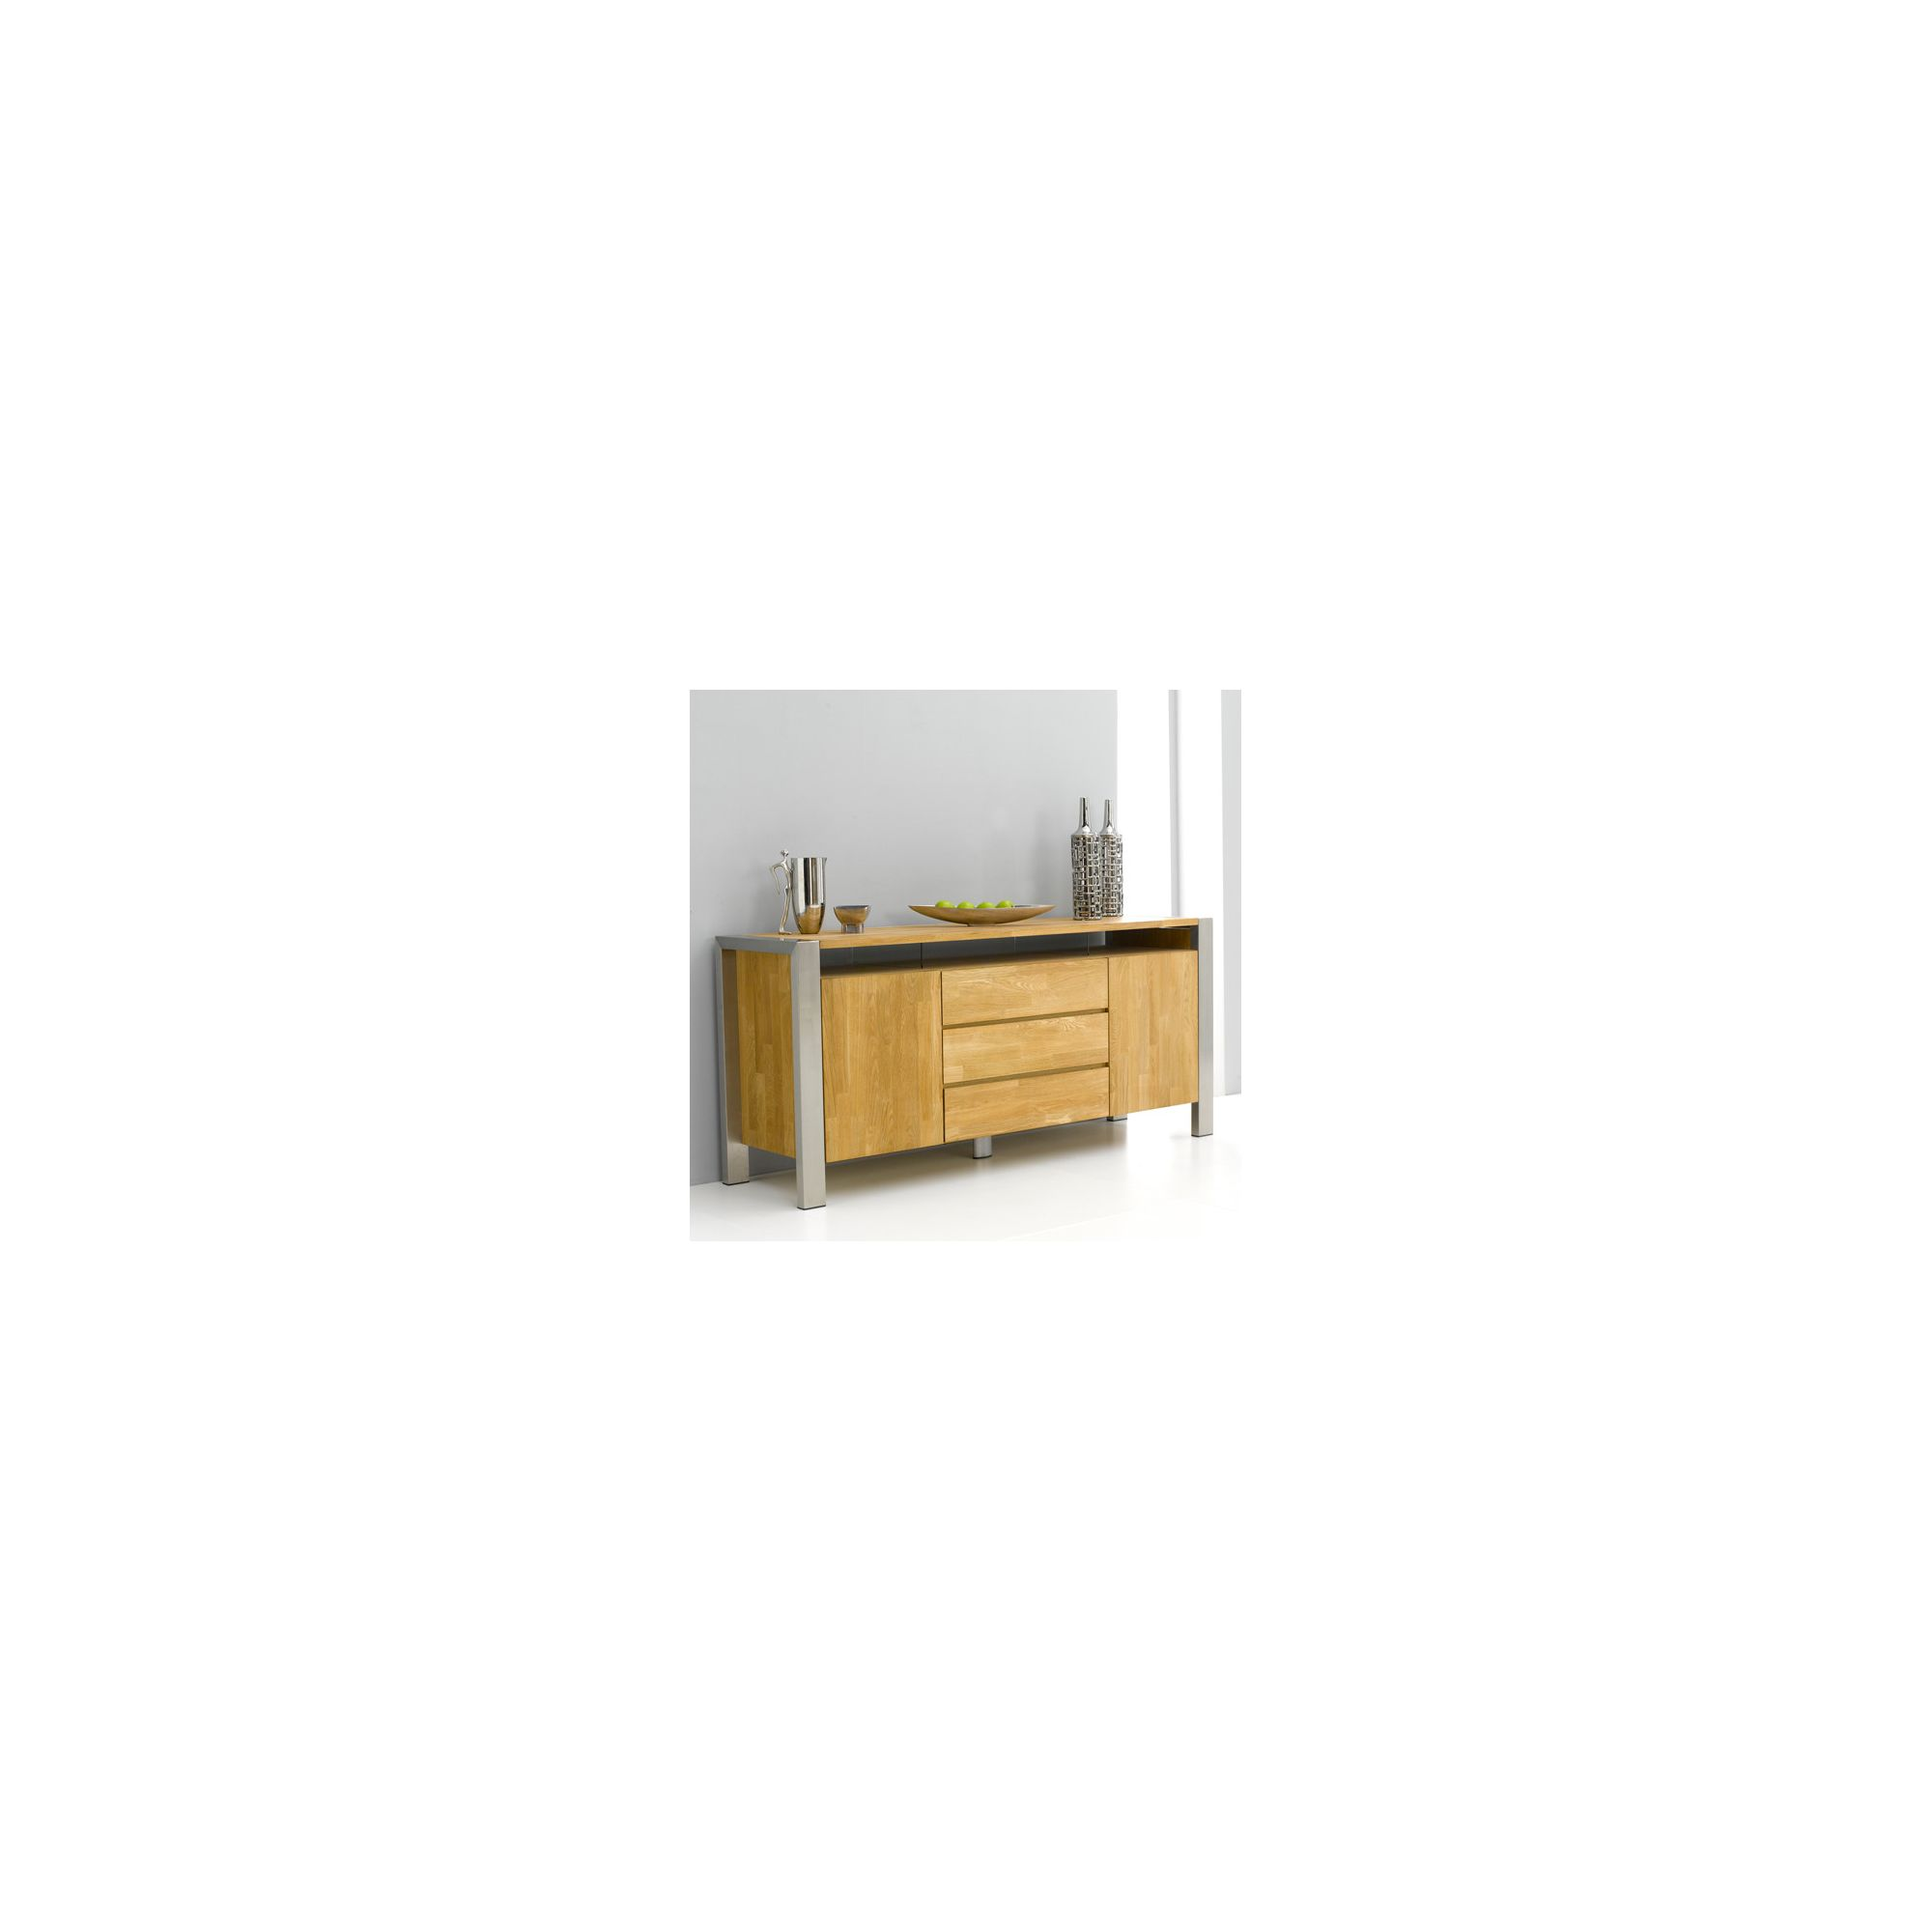 Mark Harris Furniture Ohio Sideboard in Solid Oak at Tesco Direct